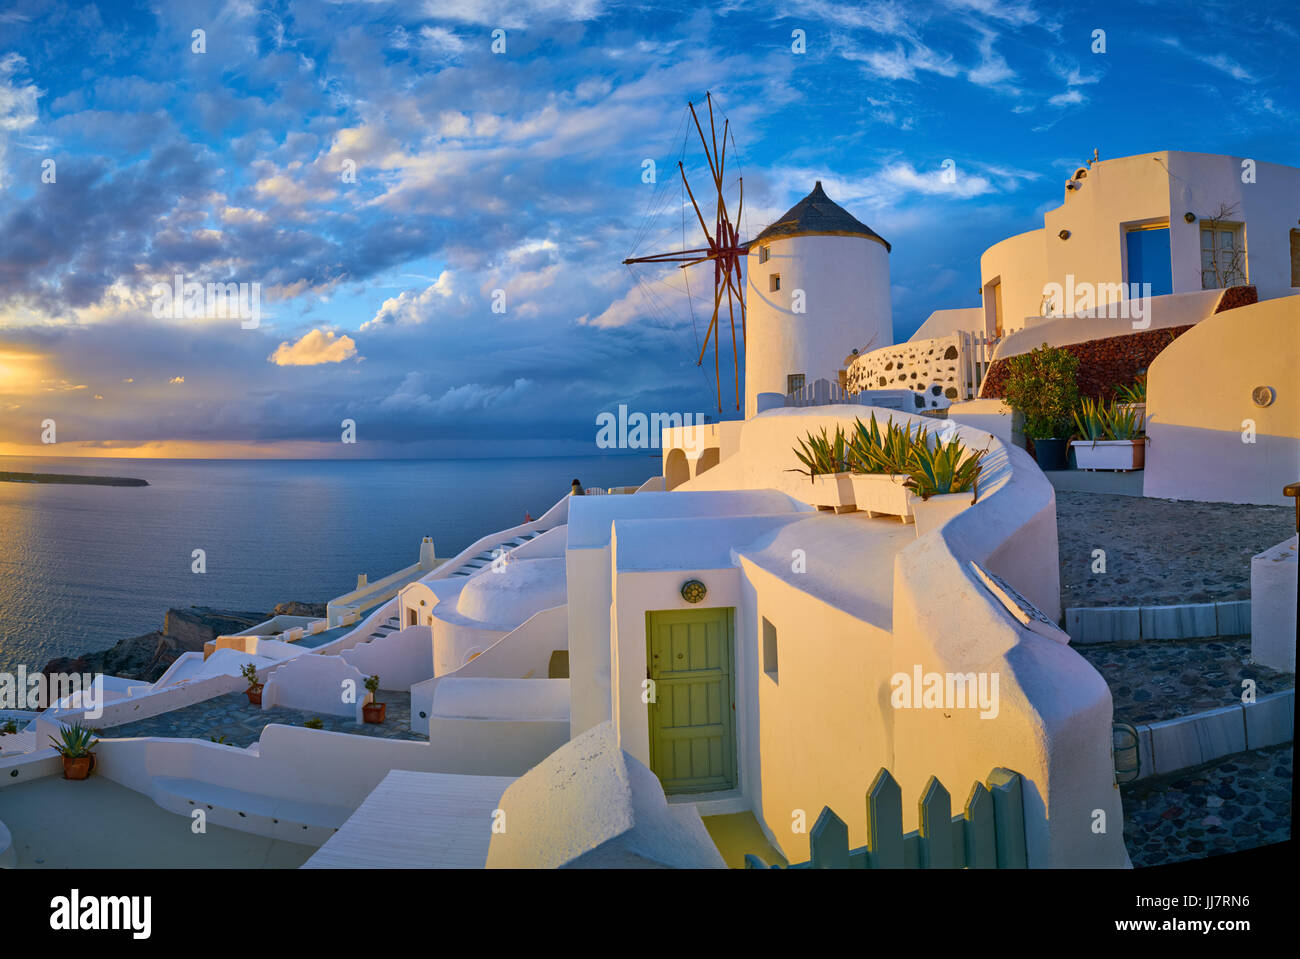 Windmill in the village of Oia at sunset, Santorini, Greece - Stock Image